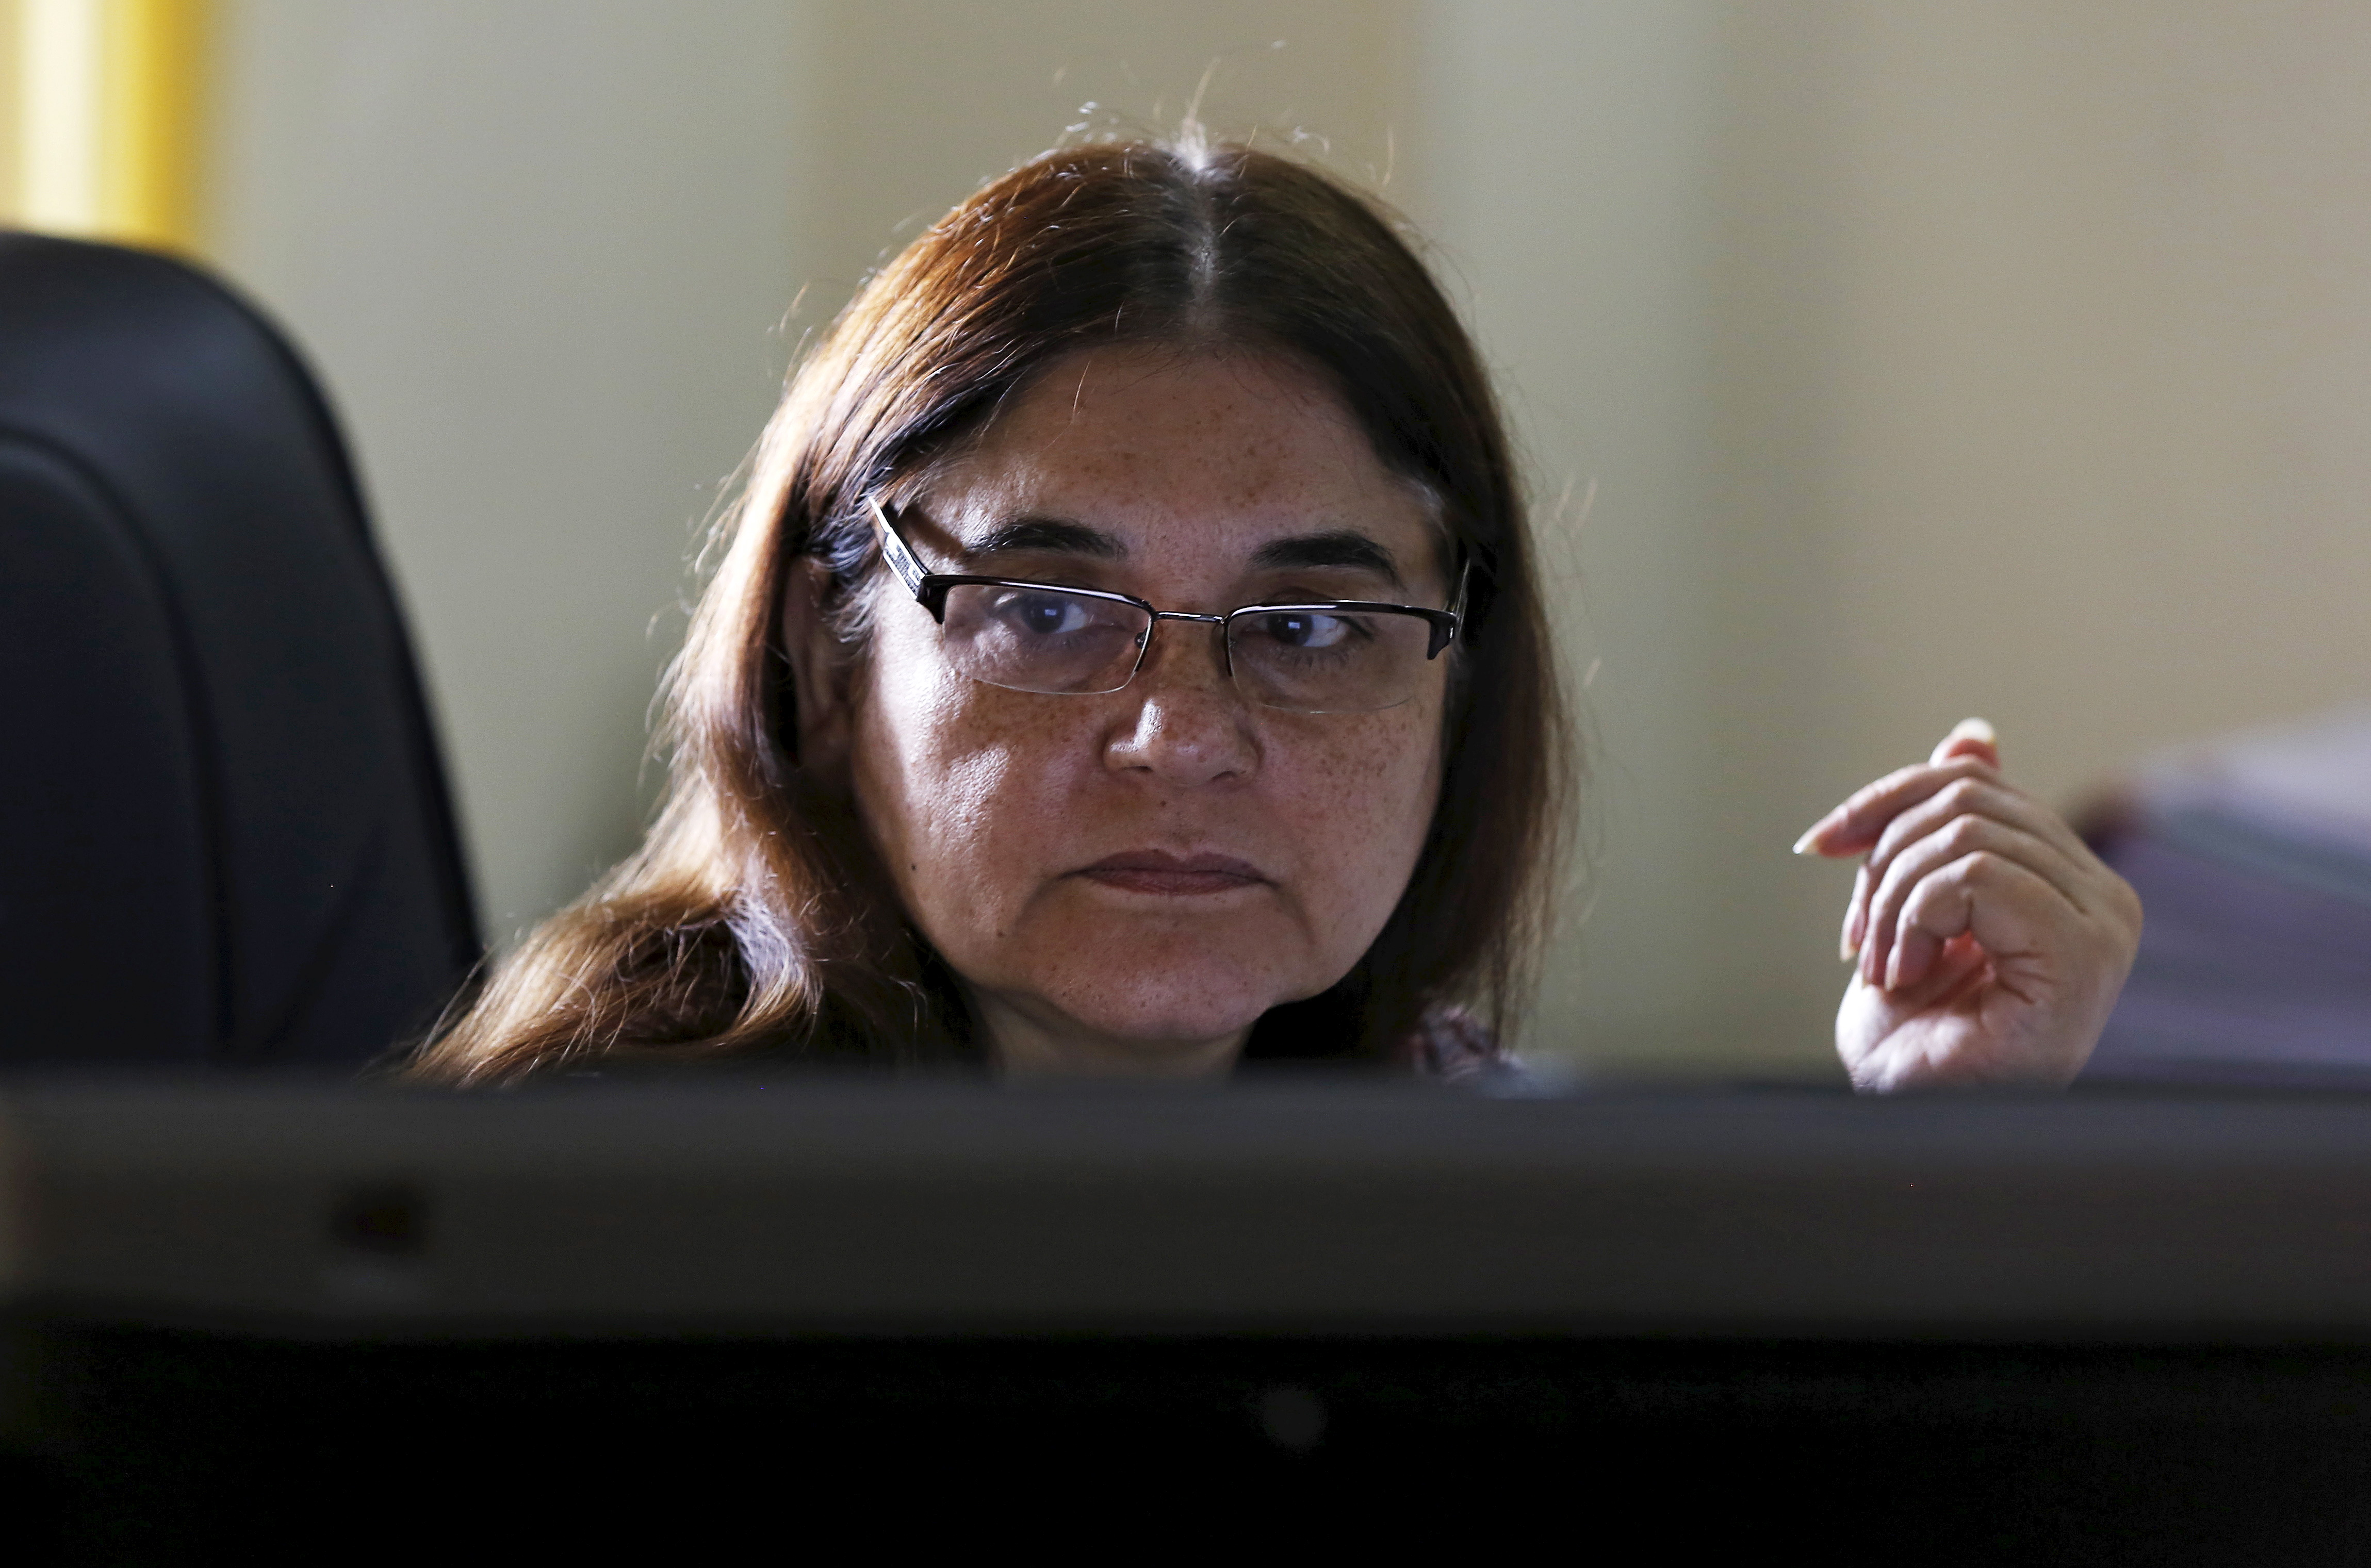 India's Women and Child Welfare Minister Maneka Gandhi at her office in New Delhi on Oct. 19, 2015